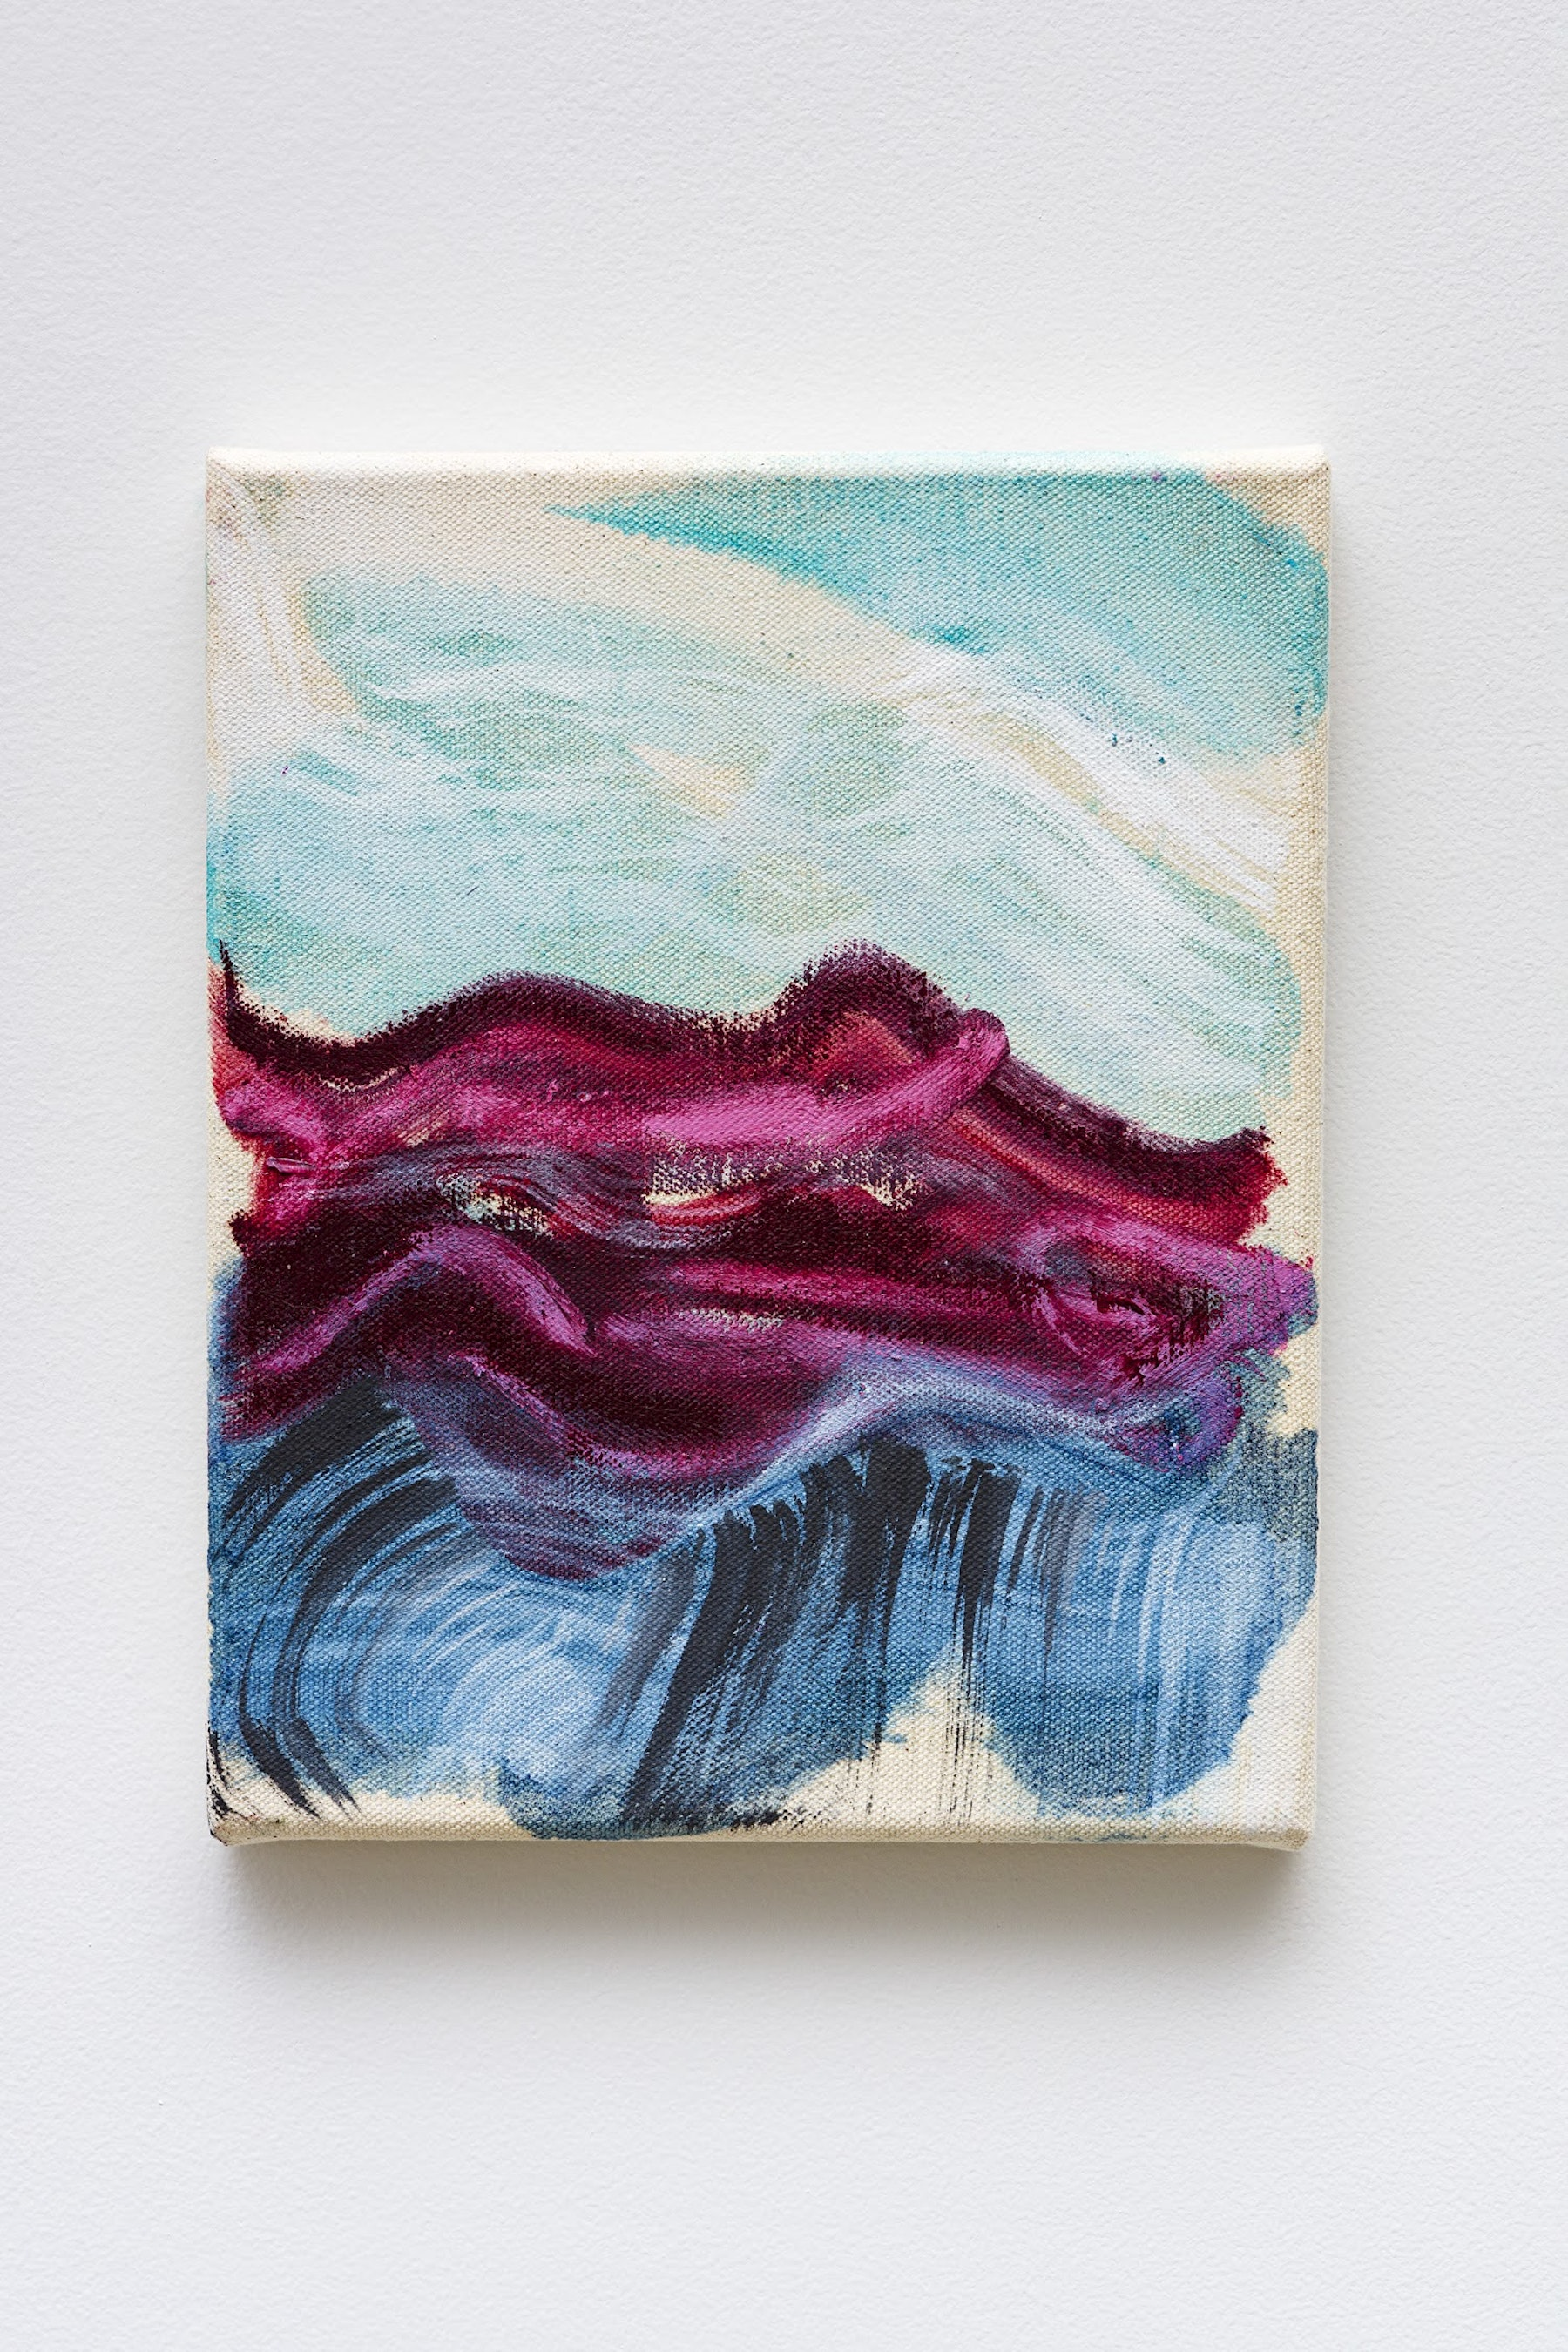 "Monique Van Genderen ""Untitled,"" 2020 Oil on canvas 10 x 8"" [HxW] (25.4 x 20.32 cm) Inventory #VGE402 Courtesy of the artist and Vielmetter Los Angeles Photo credit: Jeff Mclane"